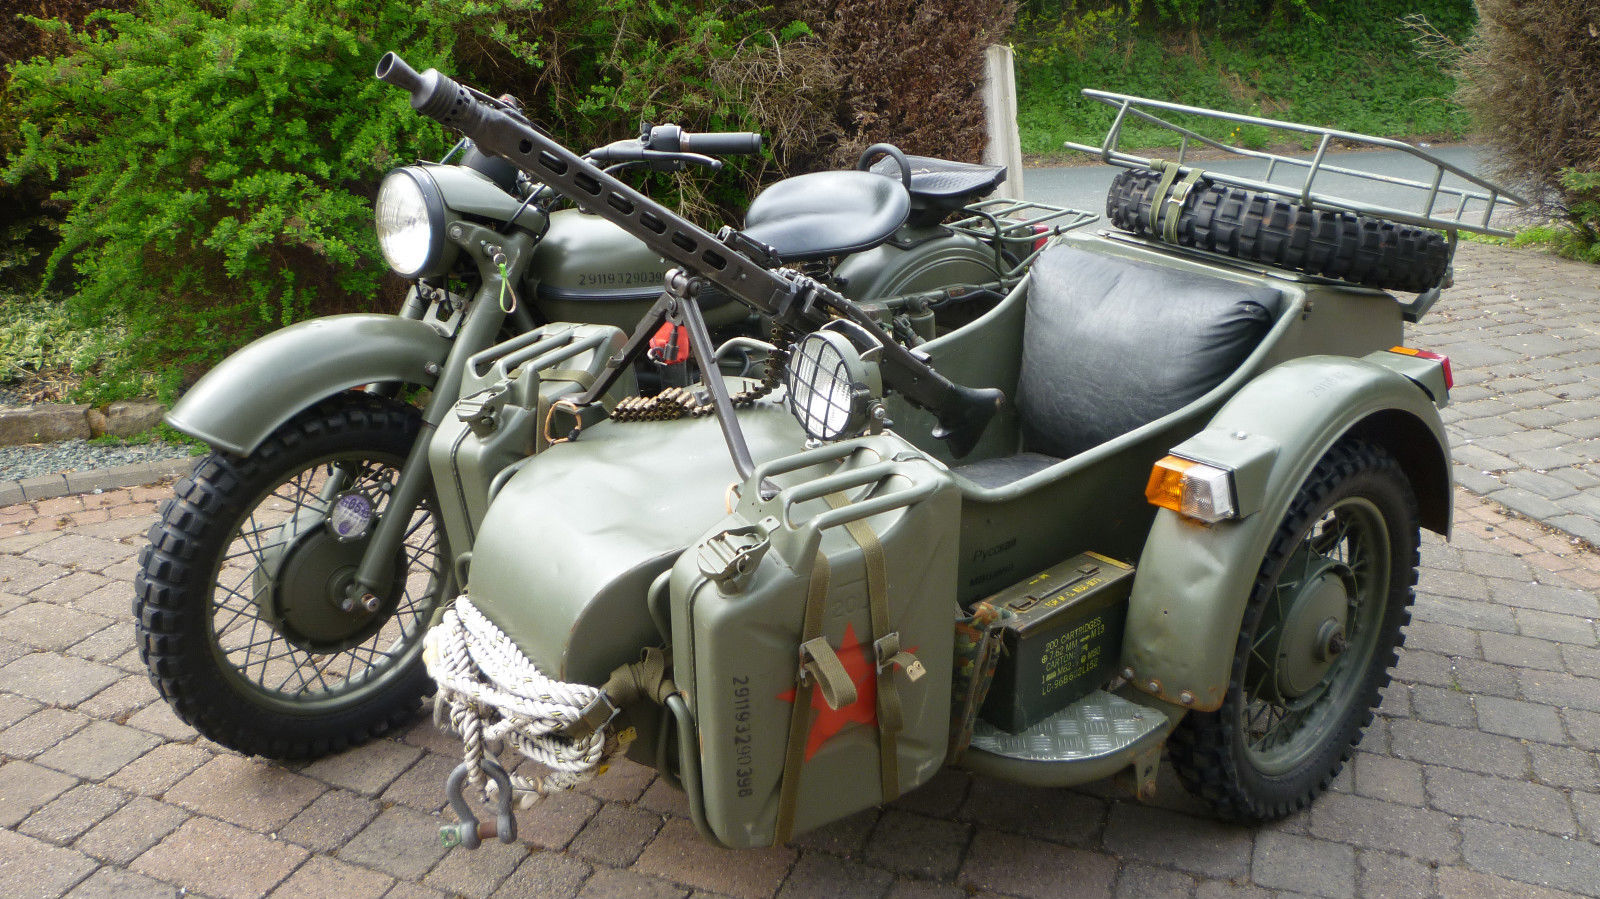 ural sidecar motorcycle 750 motorcycles star sidecars side bike touring moto speed makes